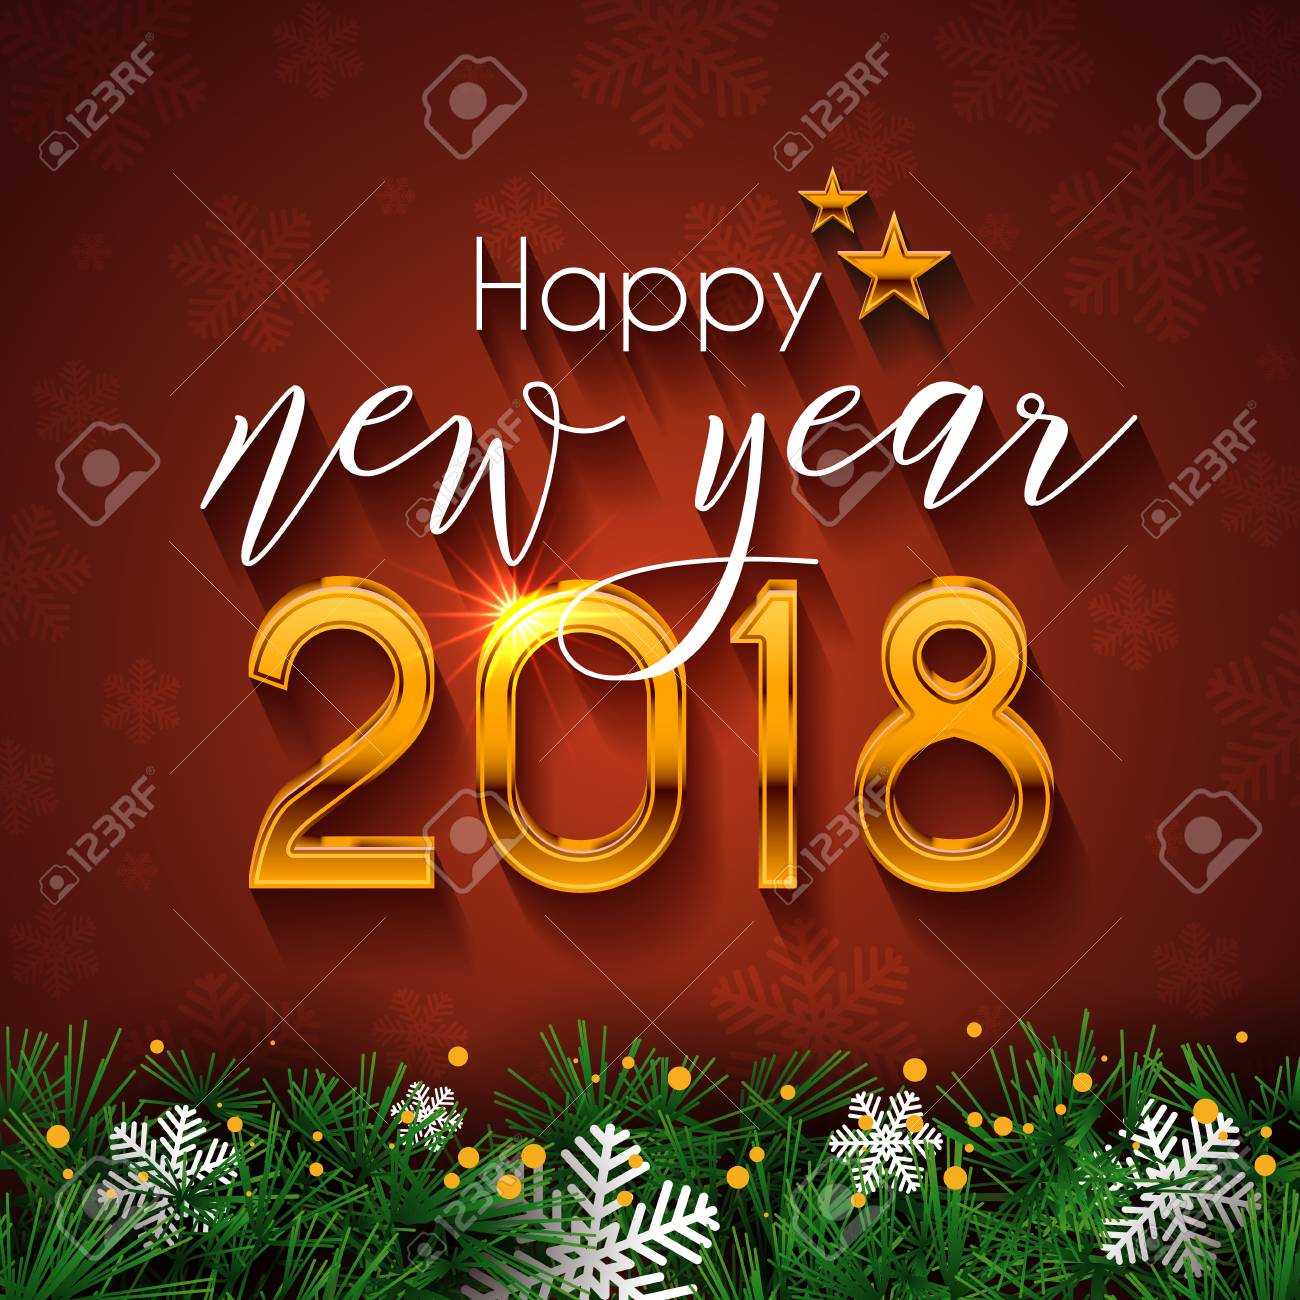 Happy new year 2018 text design vector greeting illustration happy new year 2018 text design vector greeting illustration with golden numbers snowflake and kristyandbryce Gallery